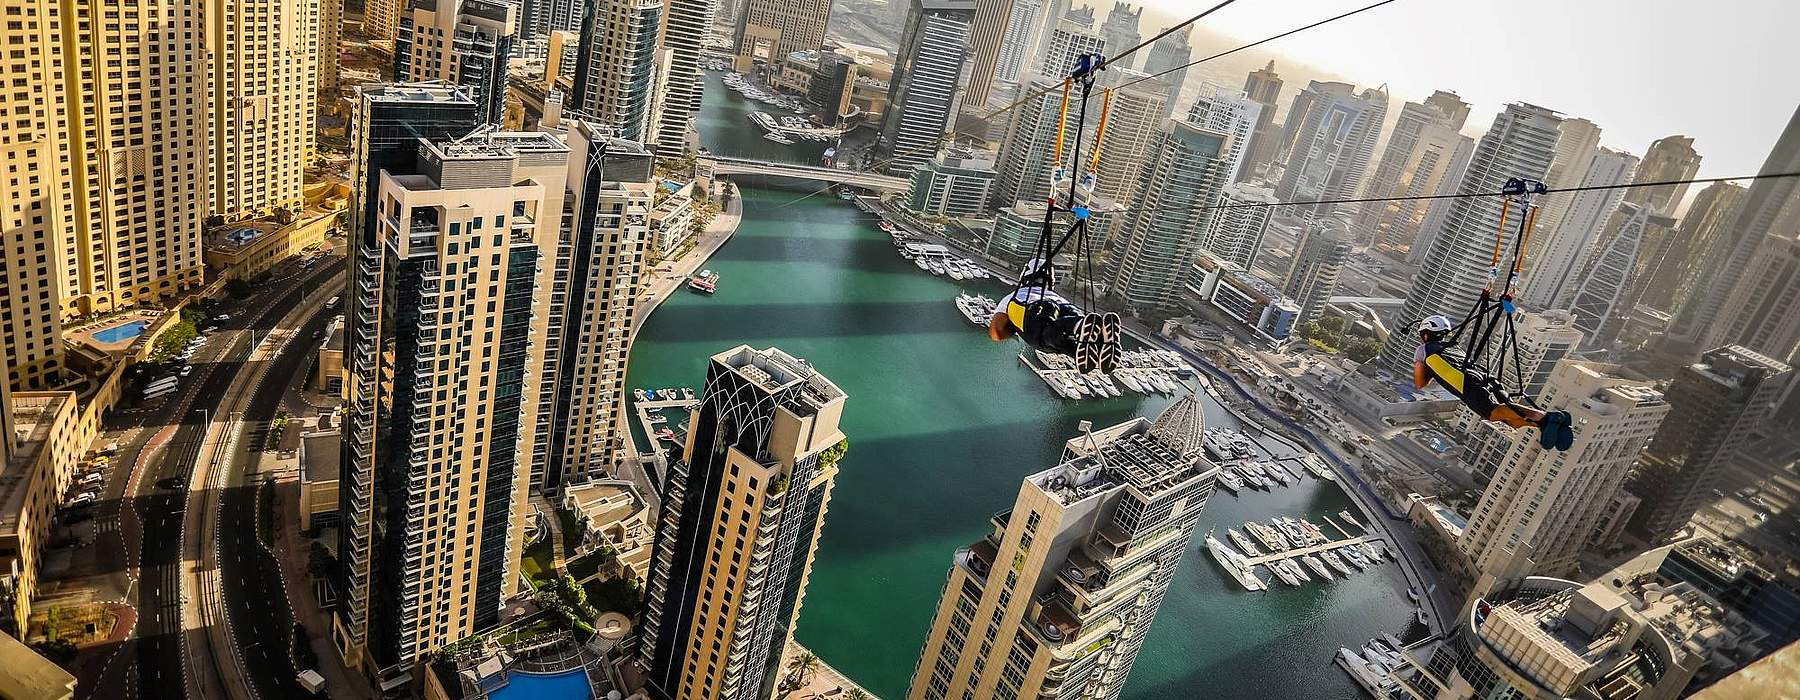 Thrills in Dubai